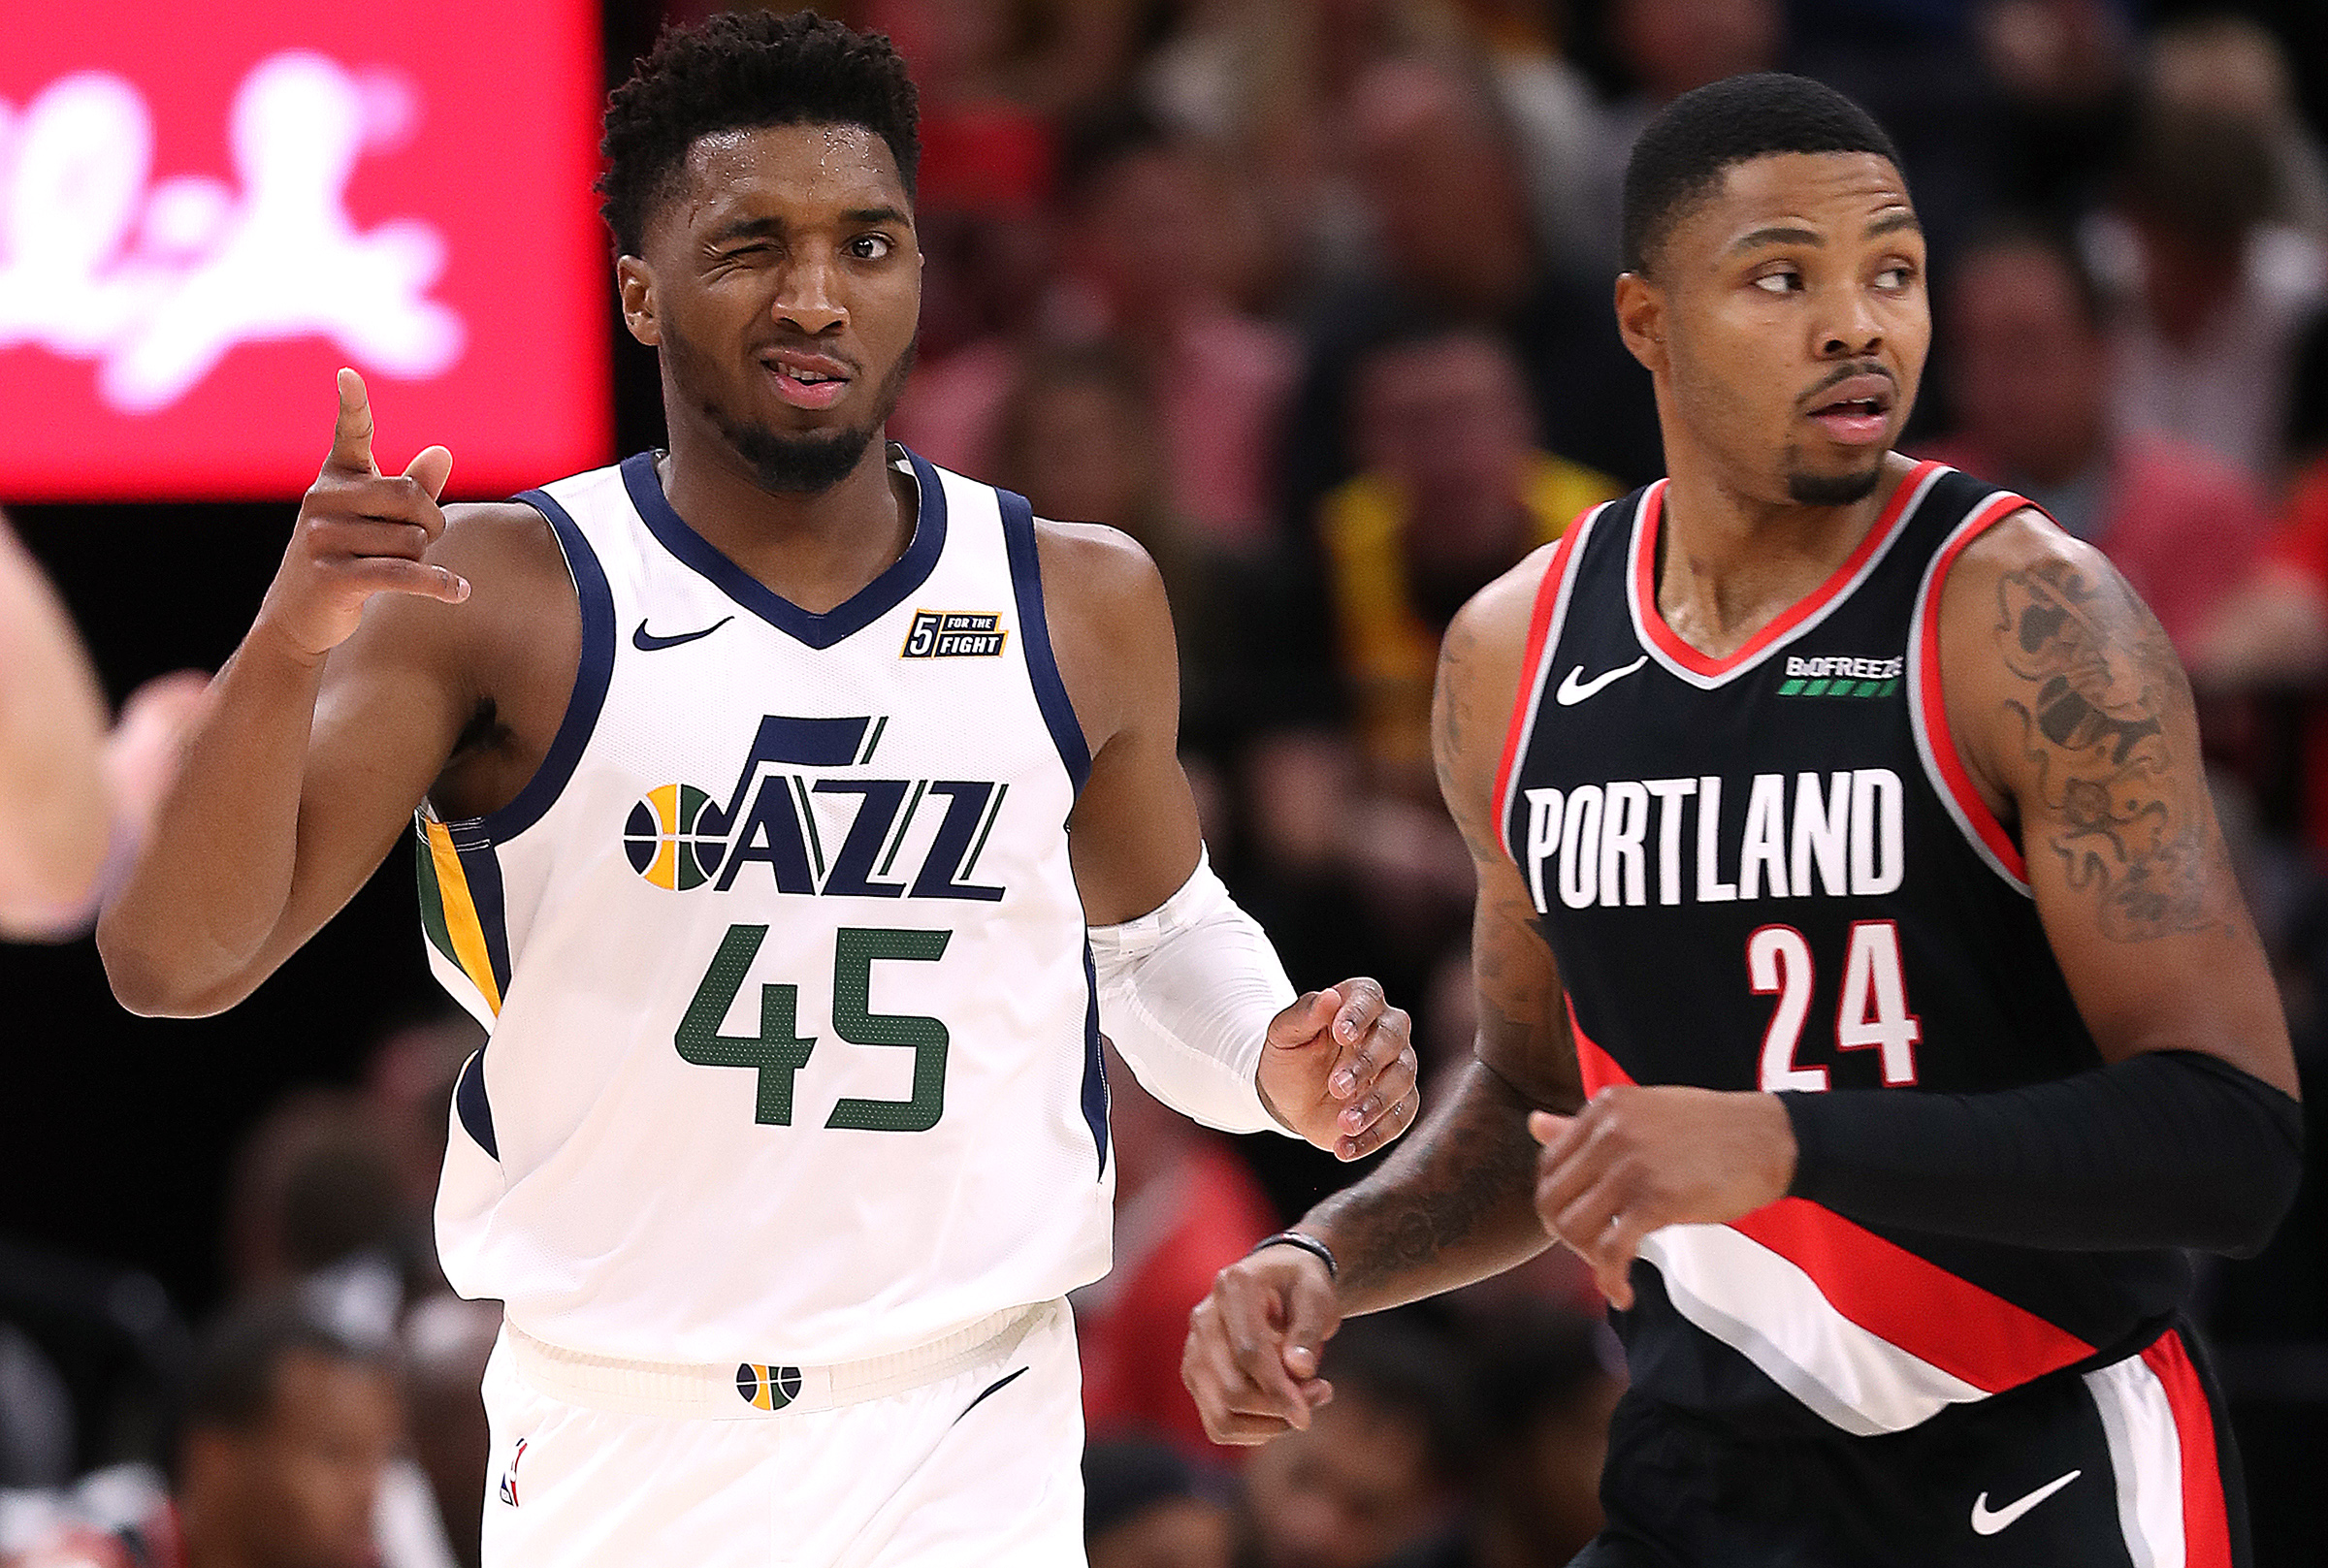 Utah Jazz guard Donovan Mitchell (45) winks at teammate Joe Ingles (2) as the Utah Jazz and the Portland Trail Blazers play at Vivint Smart Home Arena in Salt Lake City on Wednesday, Oct. 16, 2019.